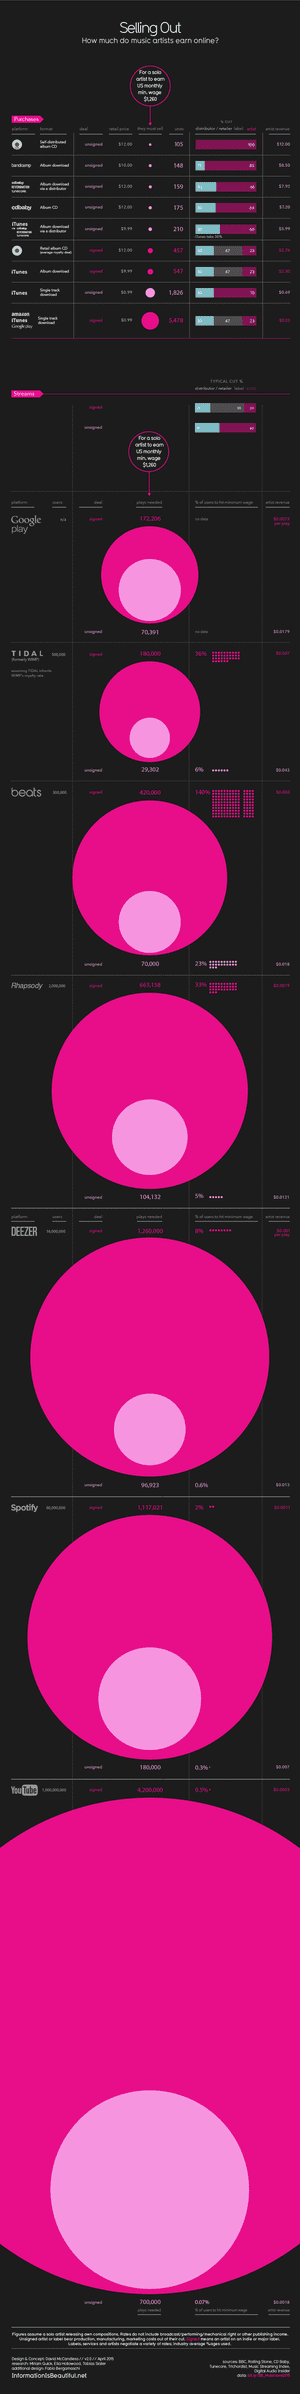 Spotify Infographic updated